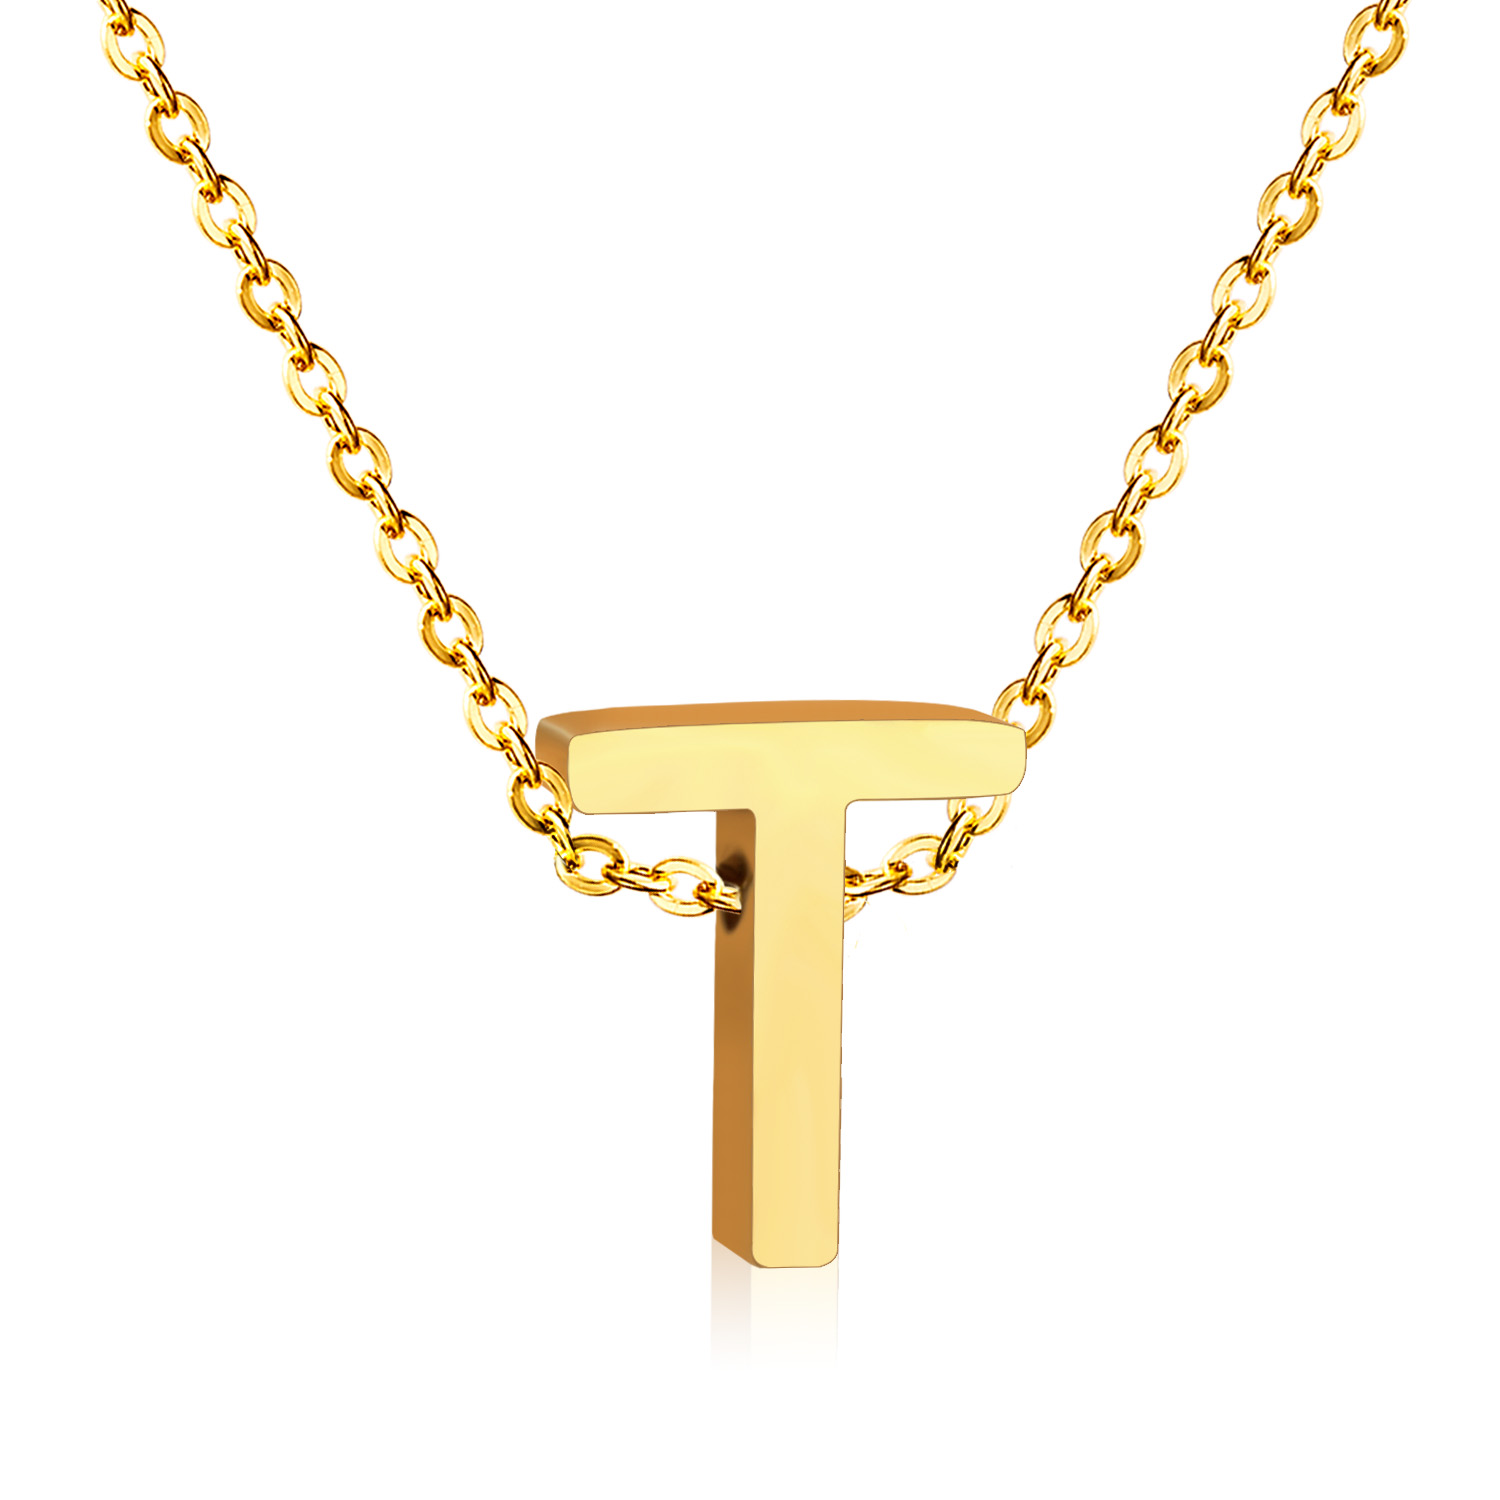 t pendant yellow betteridge gold diamond p letter